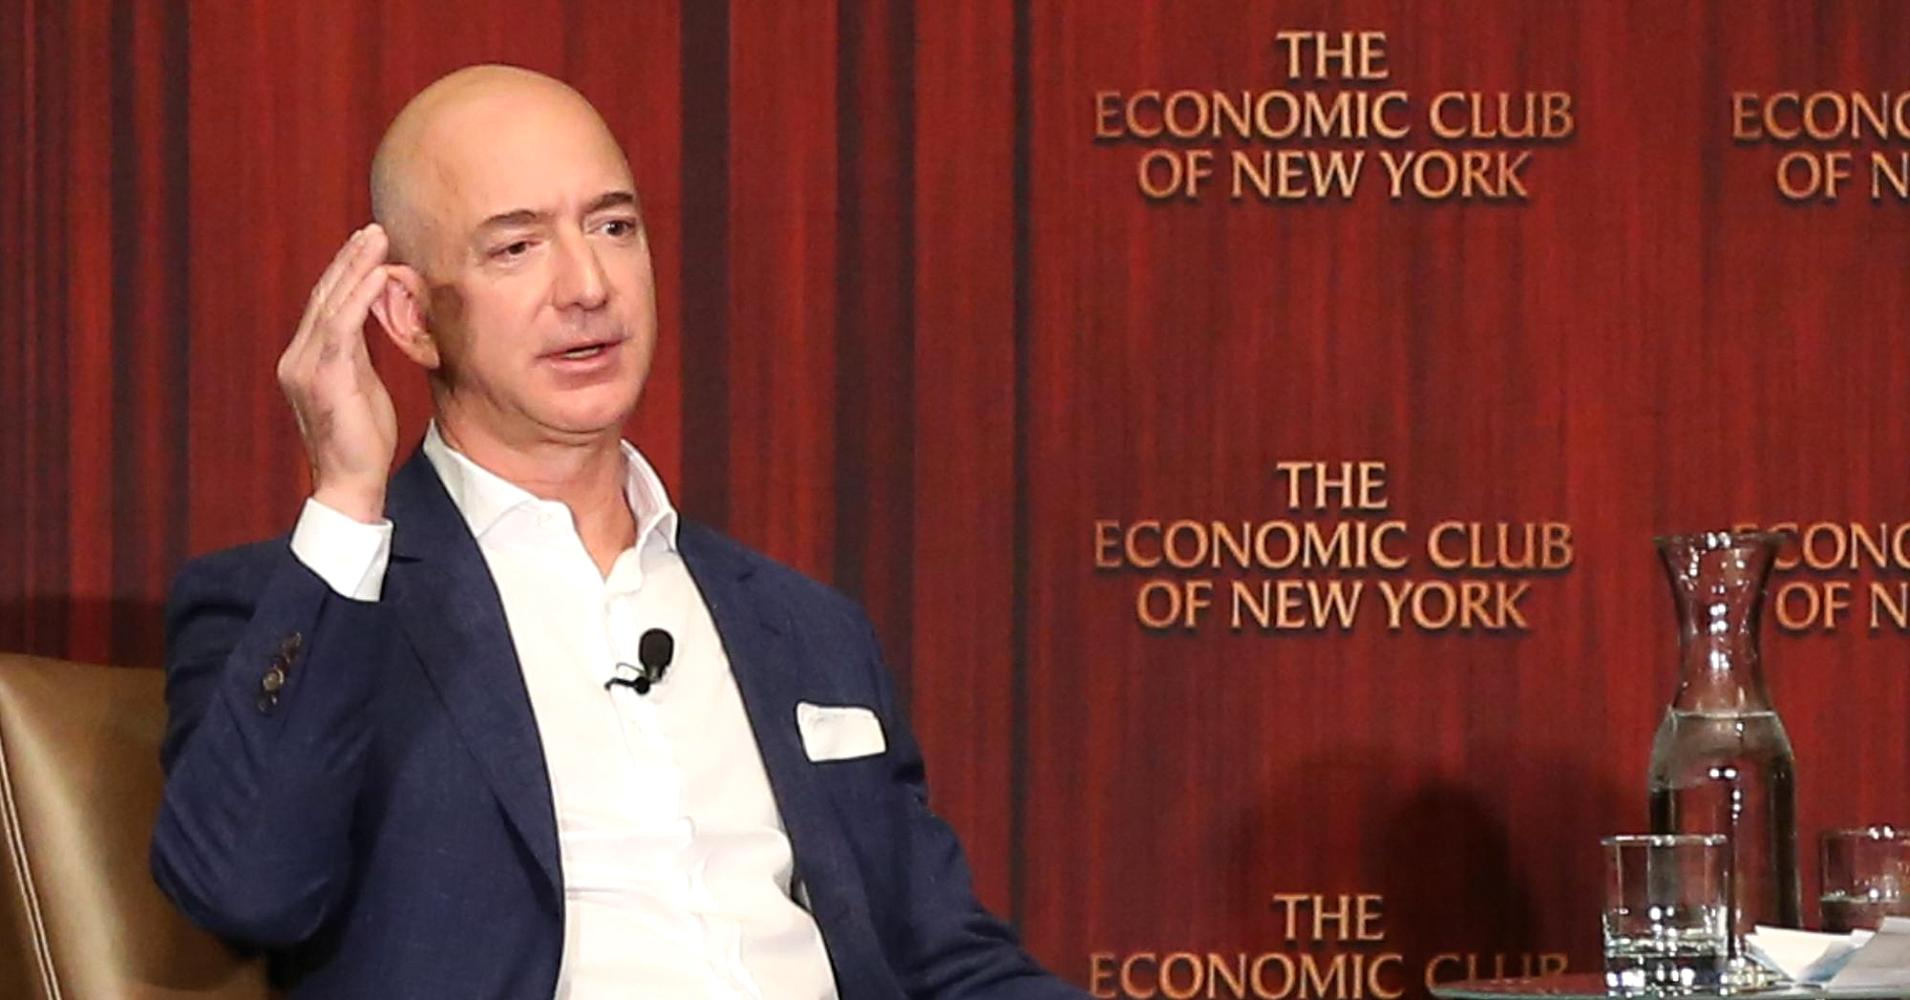 Amazon is bringing 2,000 jobs in advertising, fashion to New York City